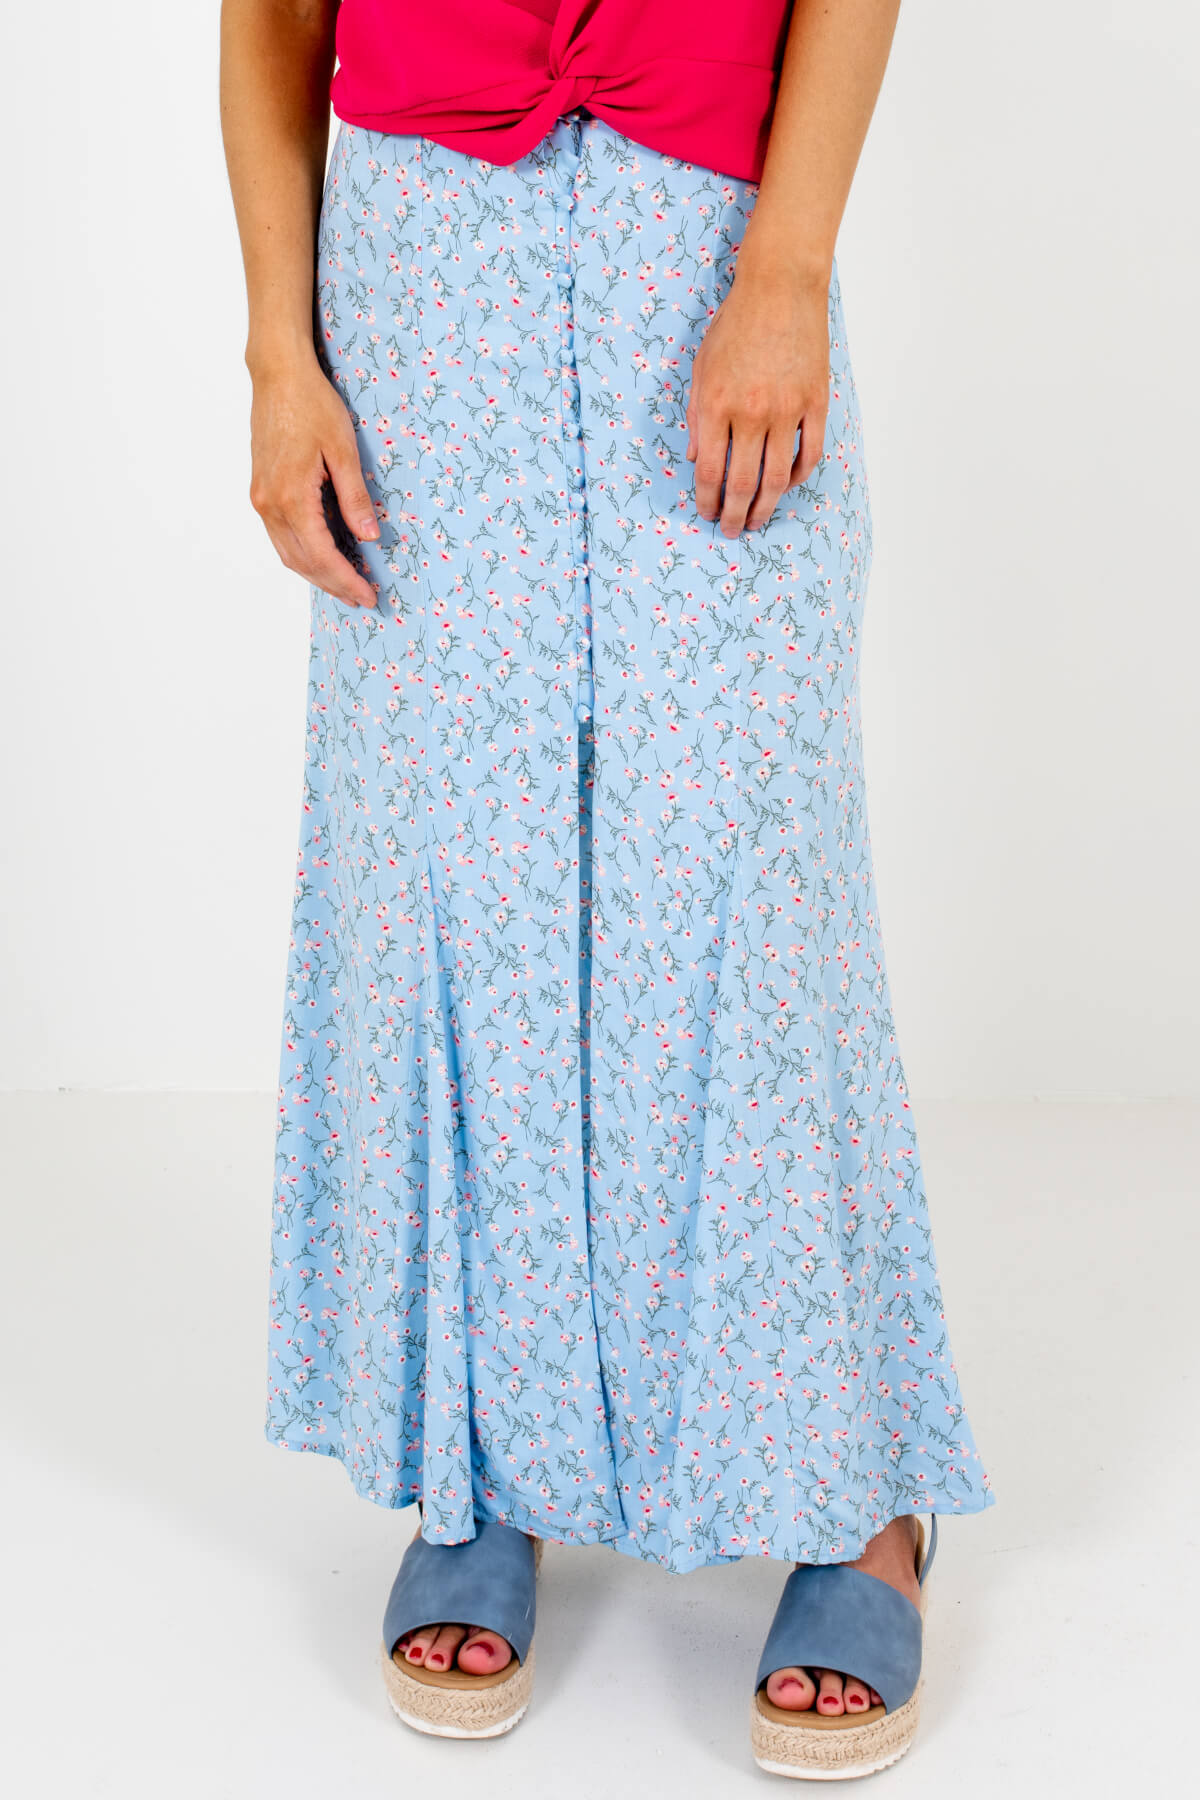 Light Blue Floral Button-Up Split Front Maxi Skirts for Spring and Summer